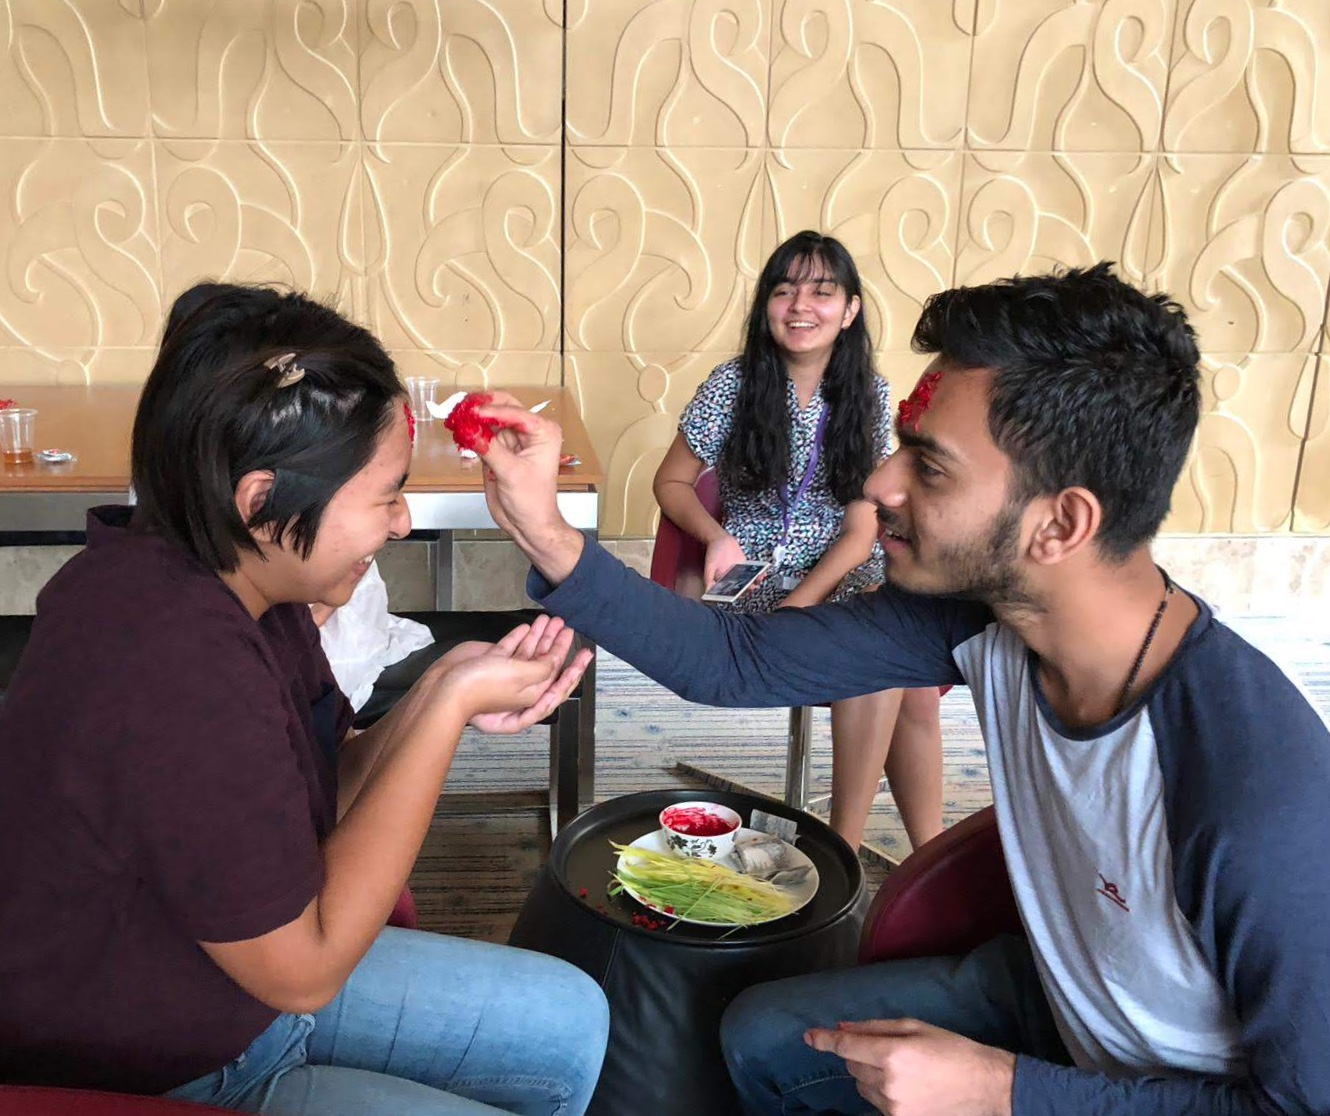 Bishal Sharma applies tika paint for Tanieshaa Shrestha in celebration of Daishan, a Nepali festival. These Nepali students gathered at EC to celebrate the festival together. Photo by Krishna Sharma